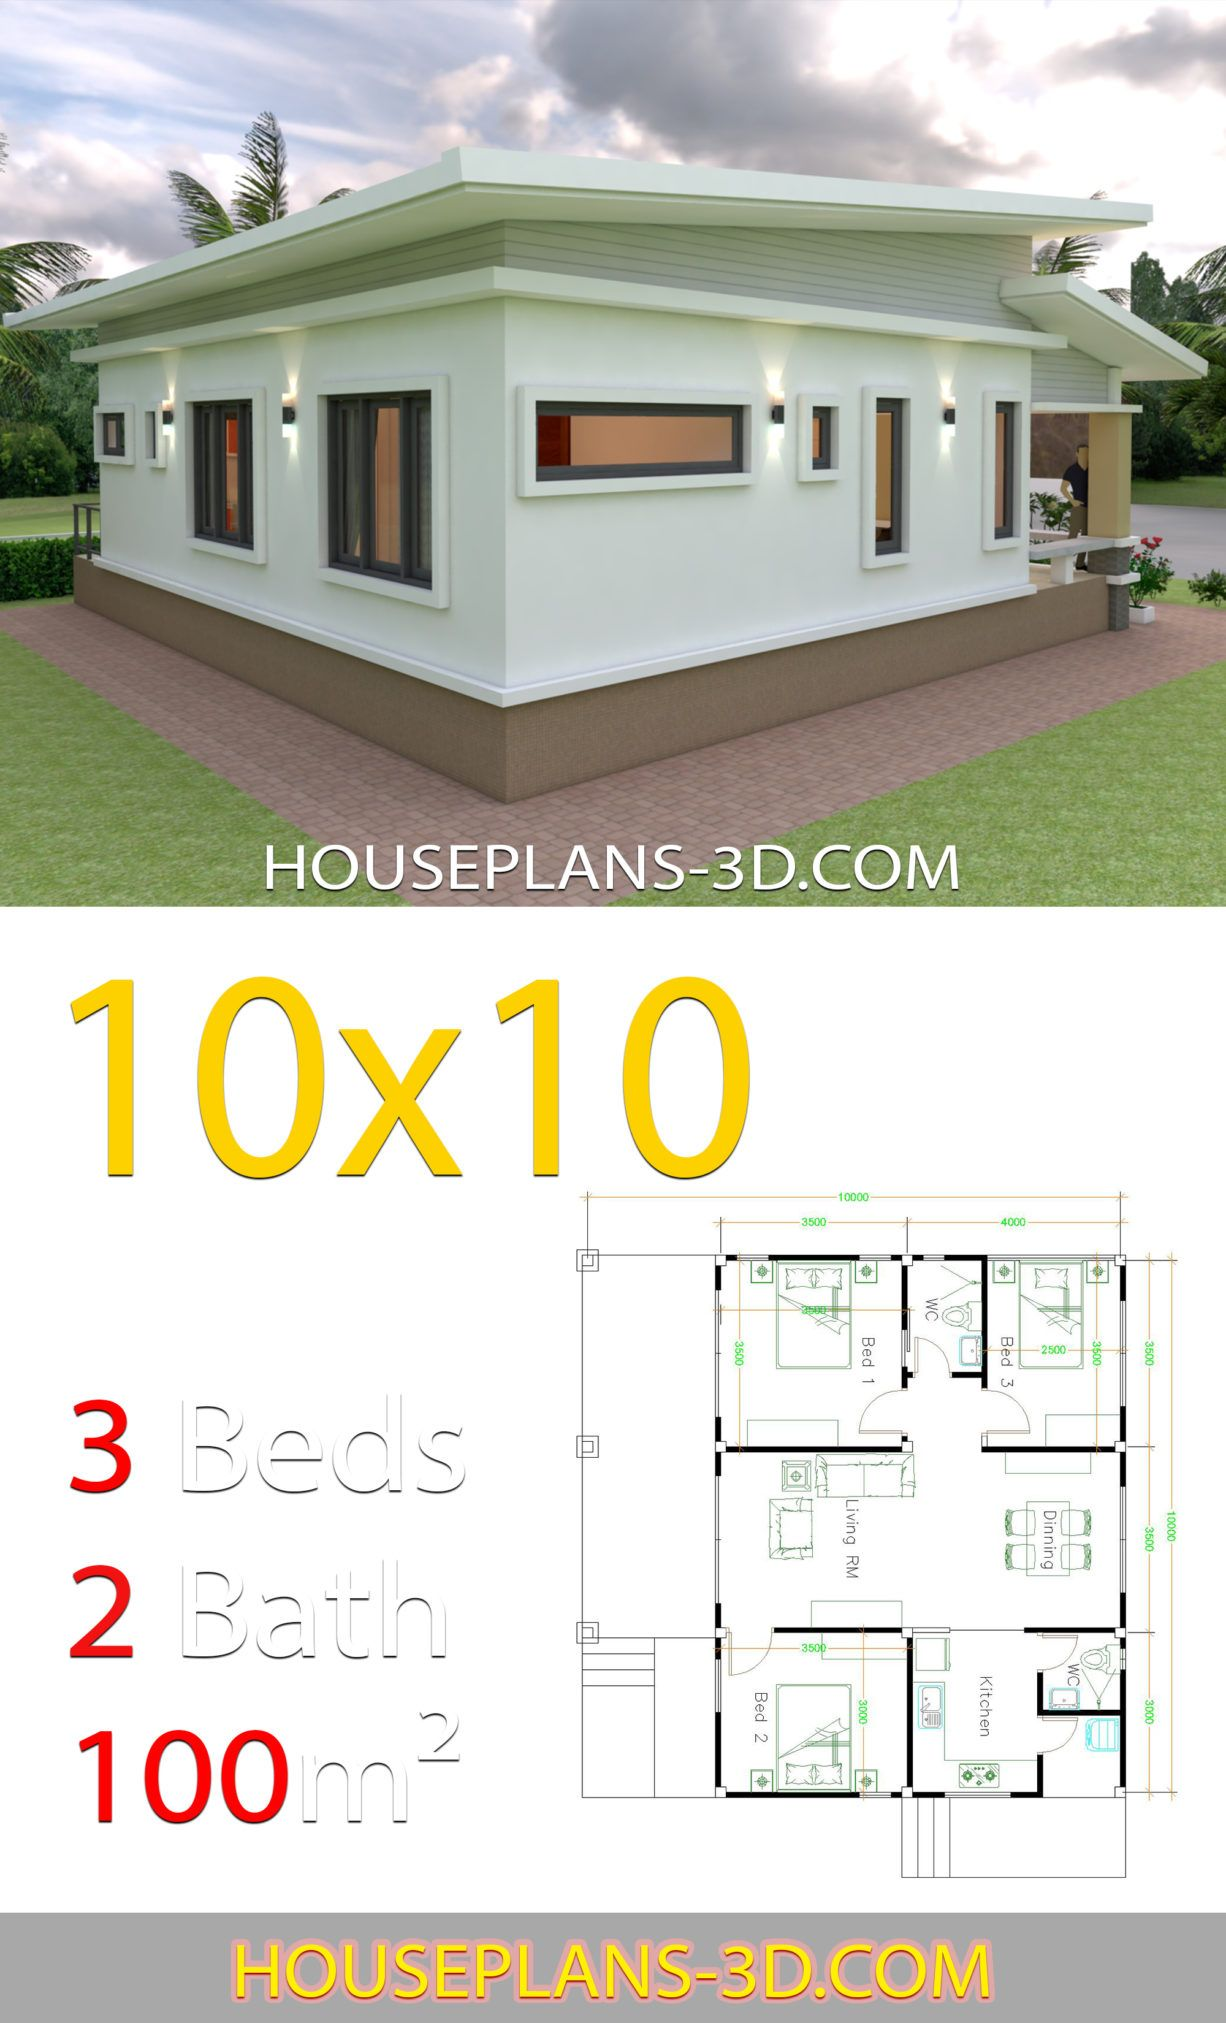 10x10 Bedroom Plans: House Design Plans 10x10 With 3 Bedrooms Full Interior Di